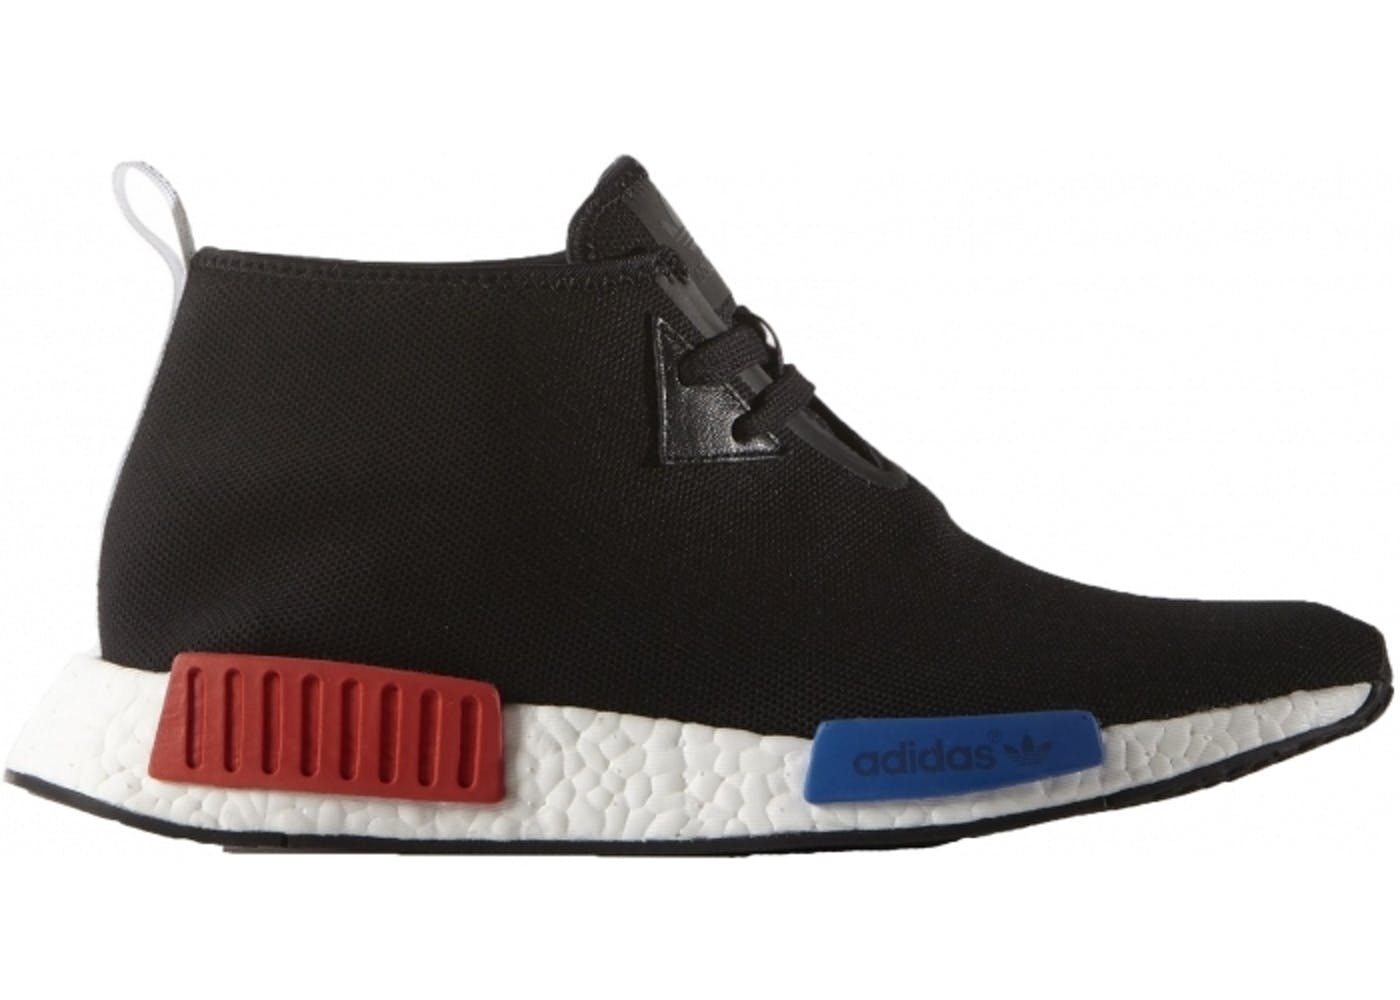 Adidas NMD C1 Chukka OG US 11 NEW DS (#583368) from Klekt